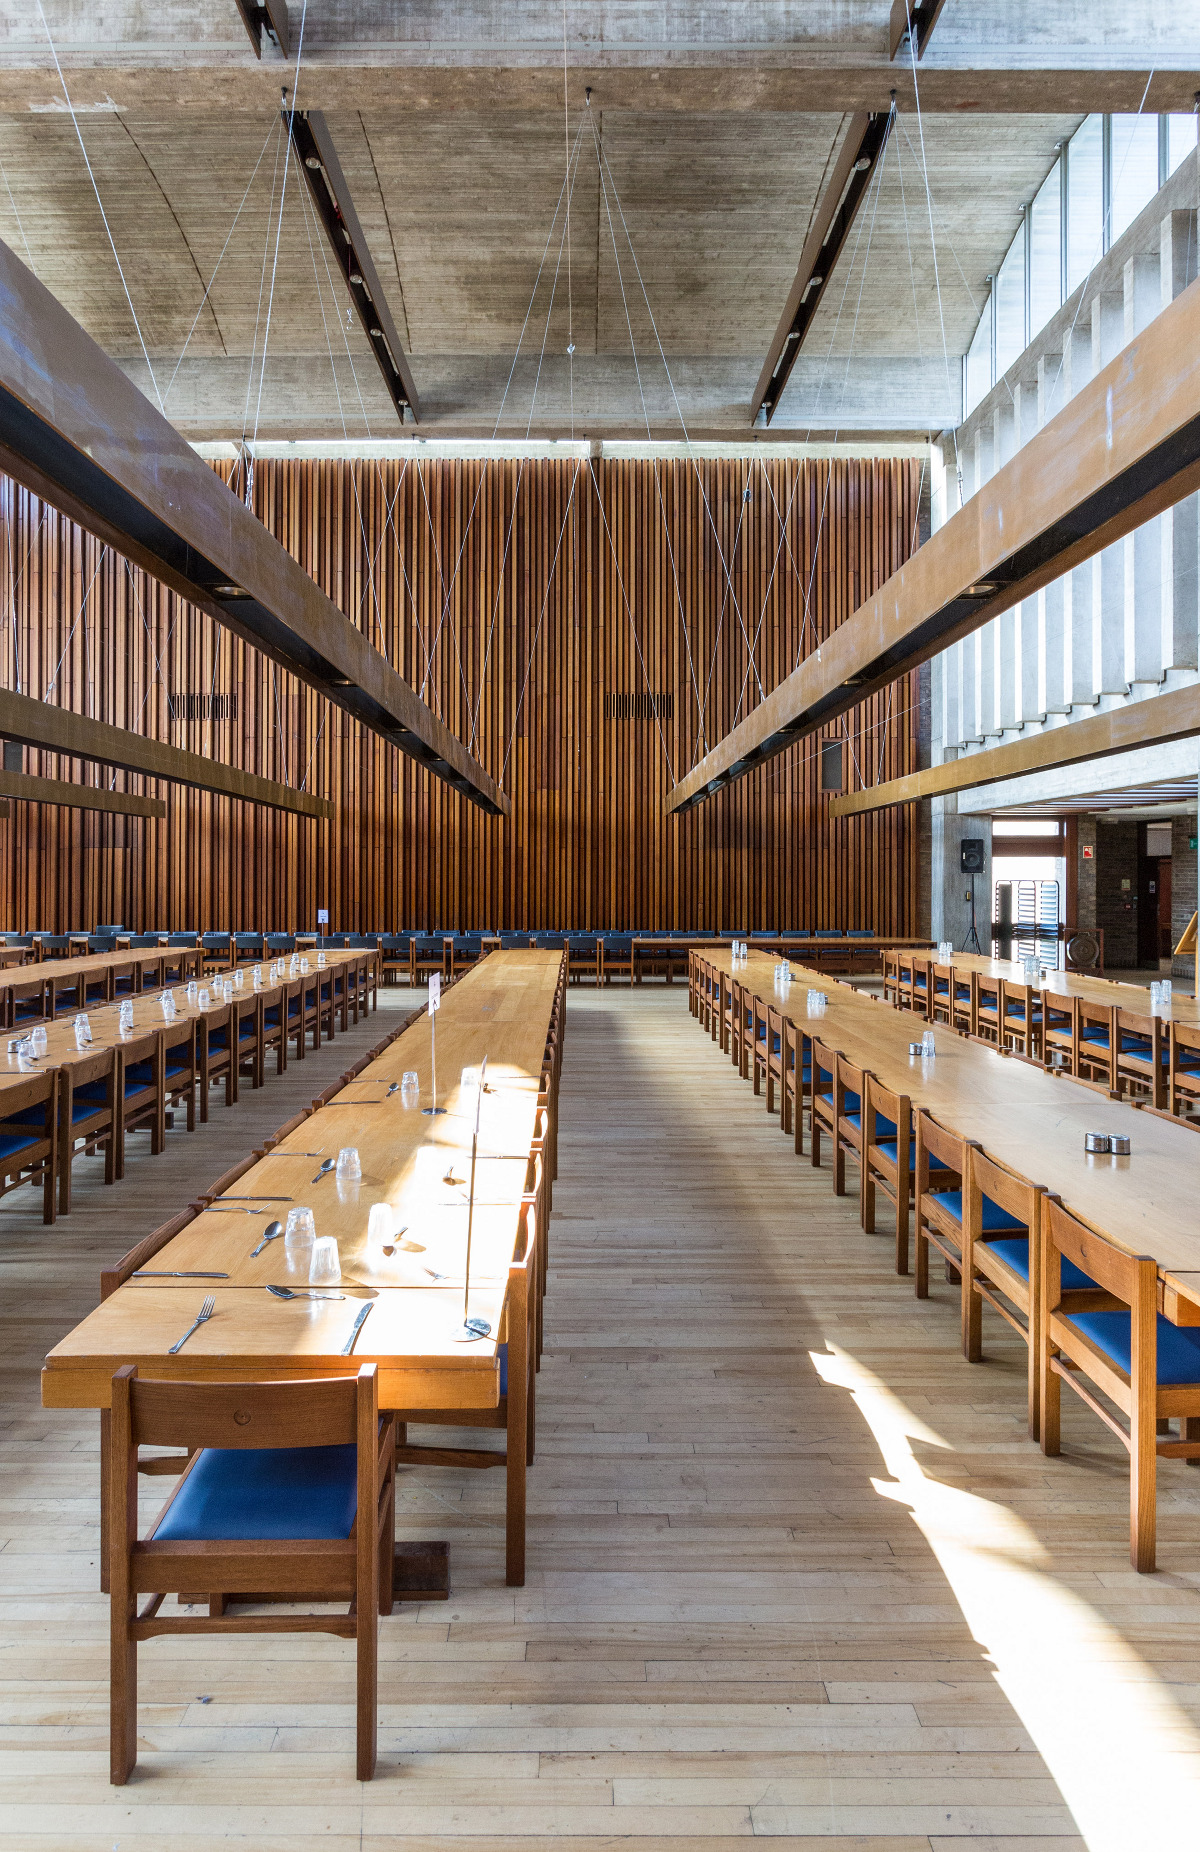 Churchill college matthew smith architecture for U of t dining hall hours